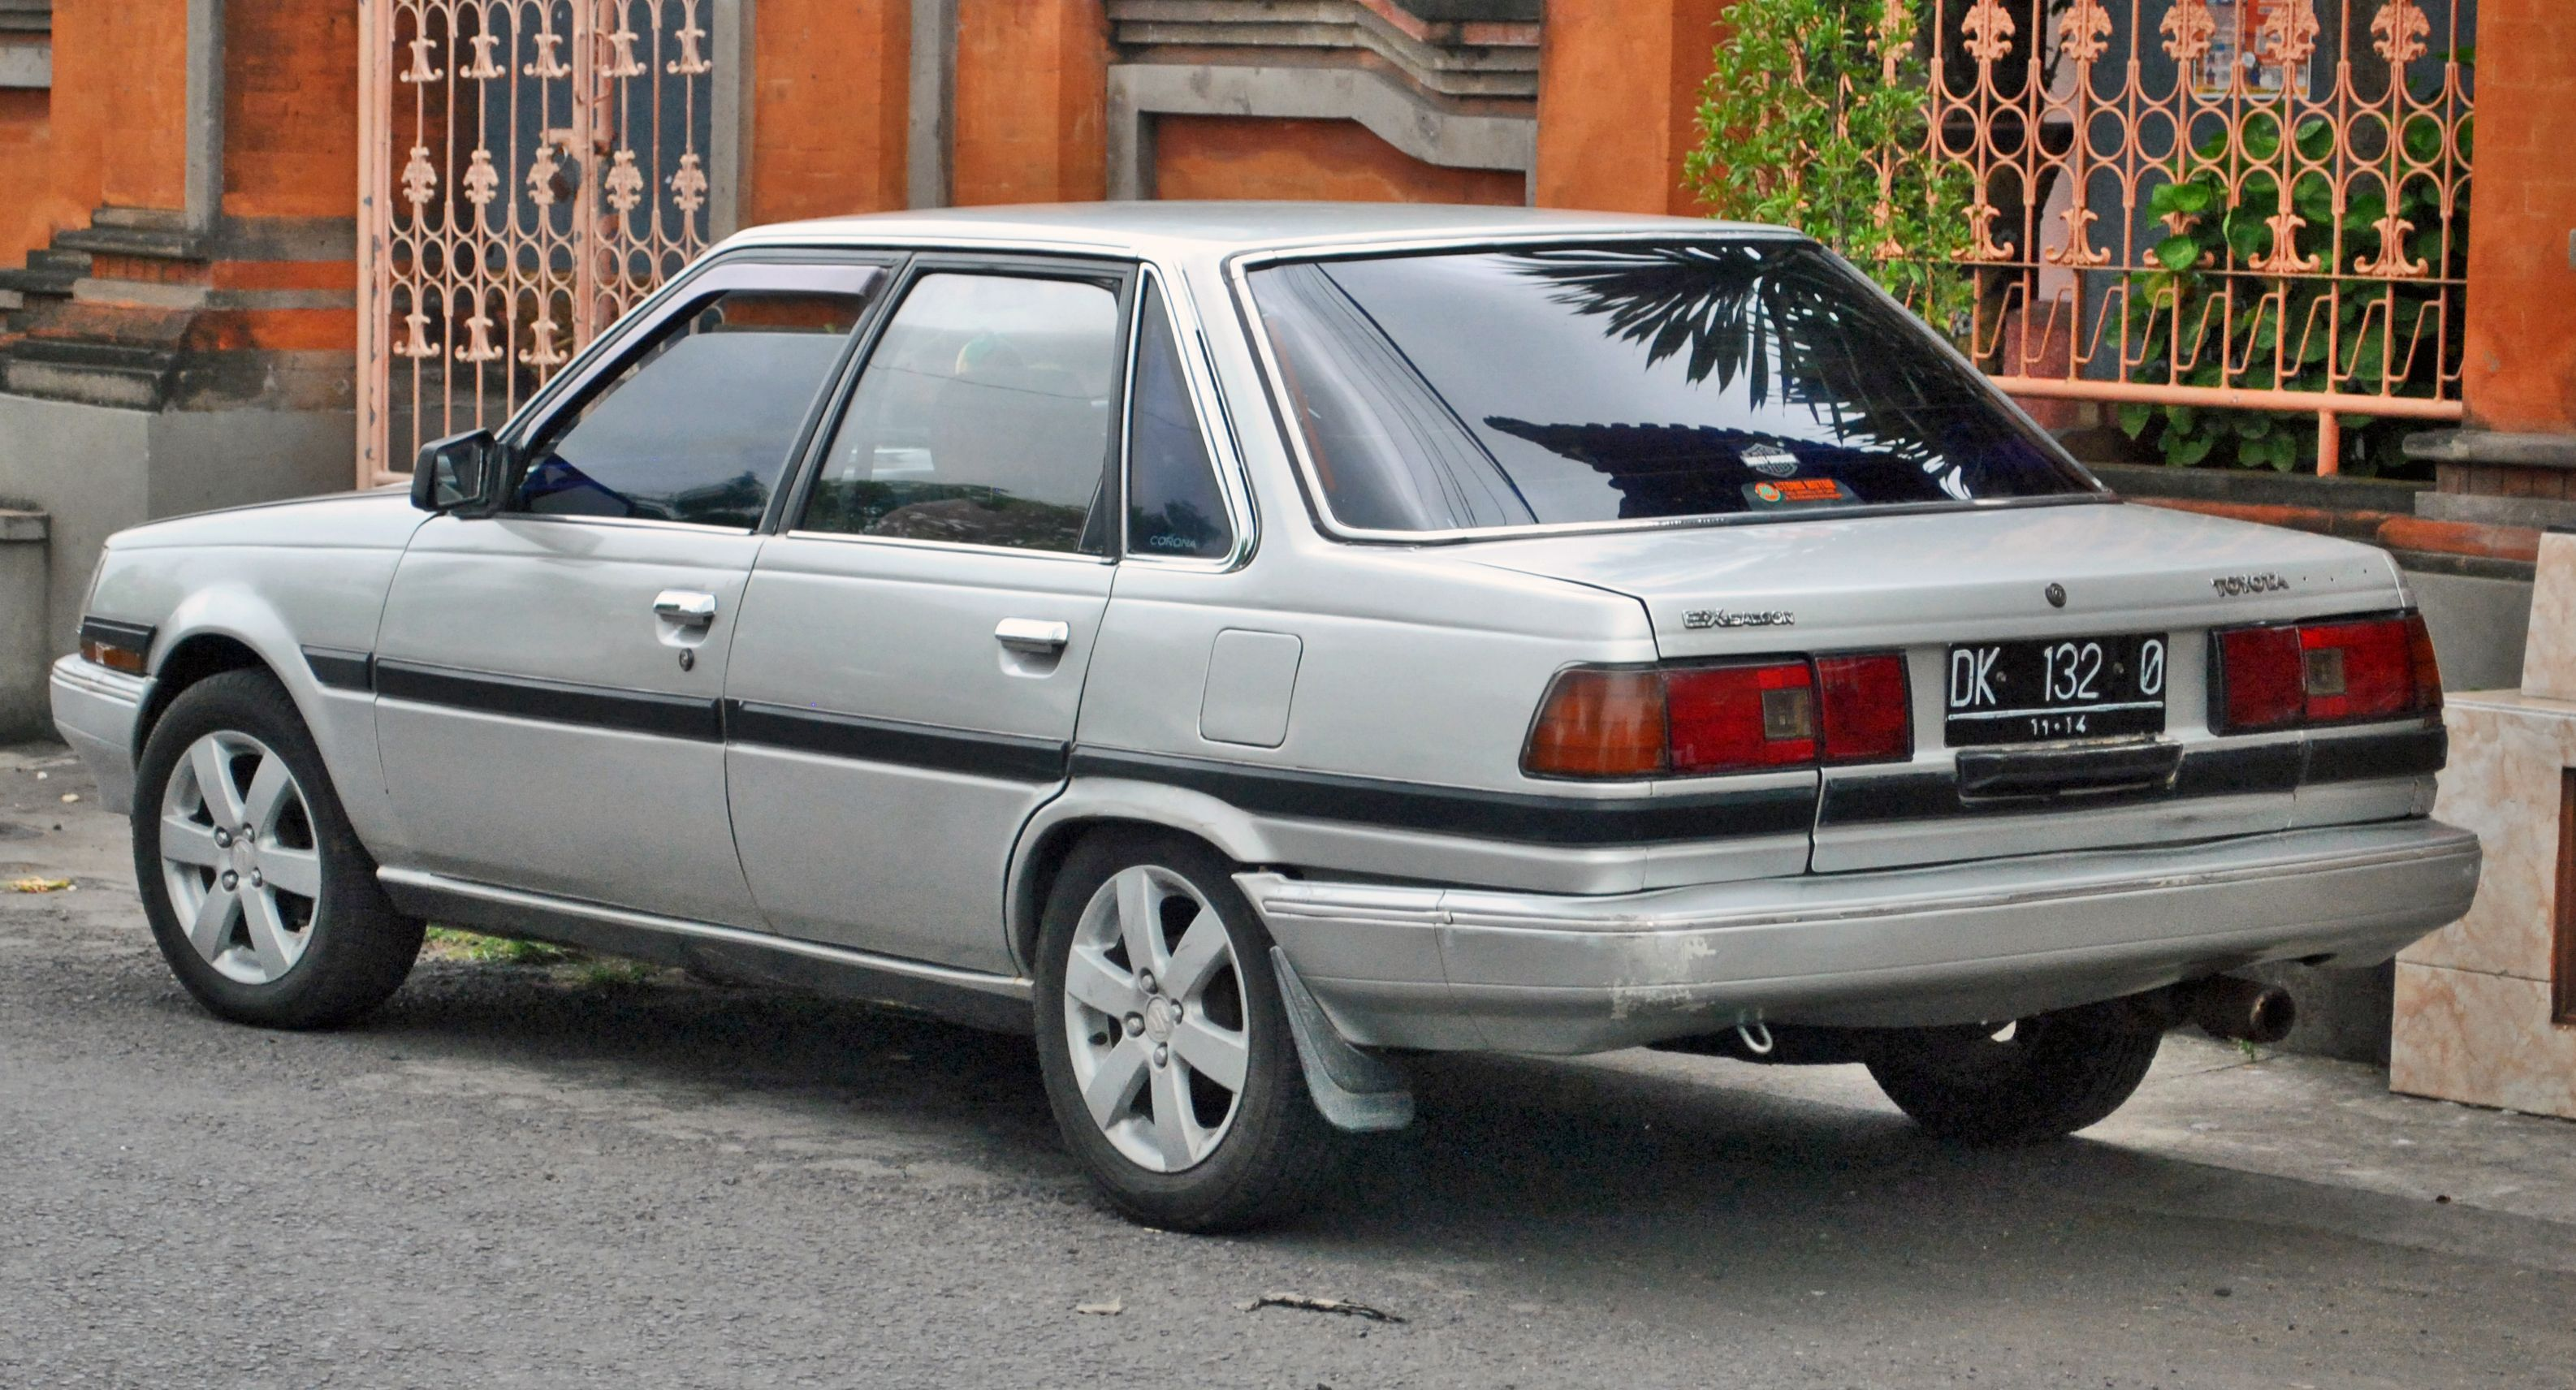 Toyota Corona Wikipedia 89200118 Choosing A French Door For Your